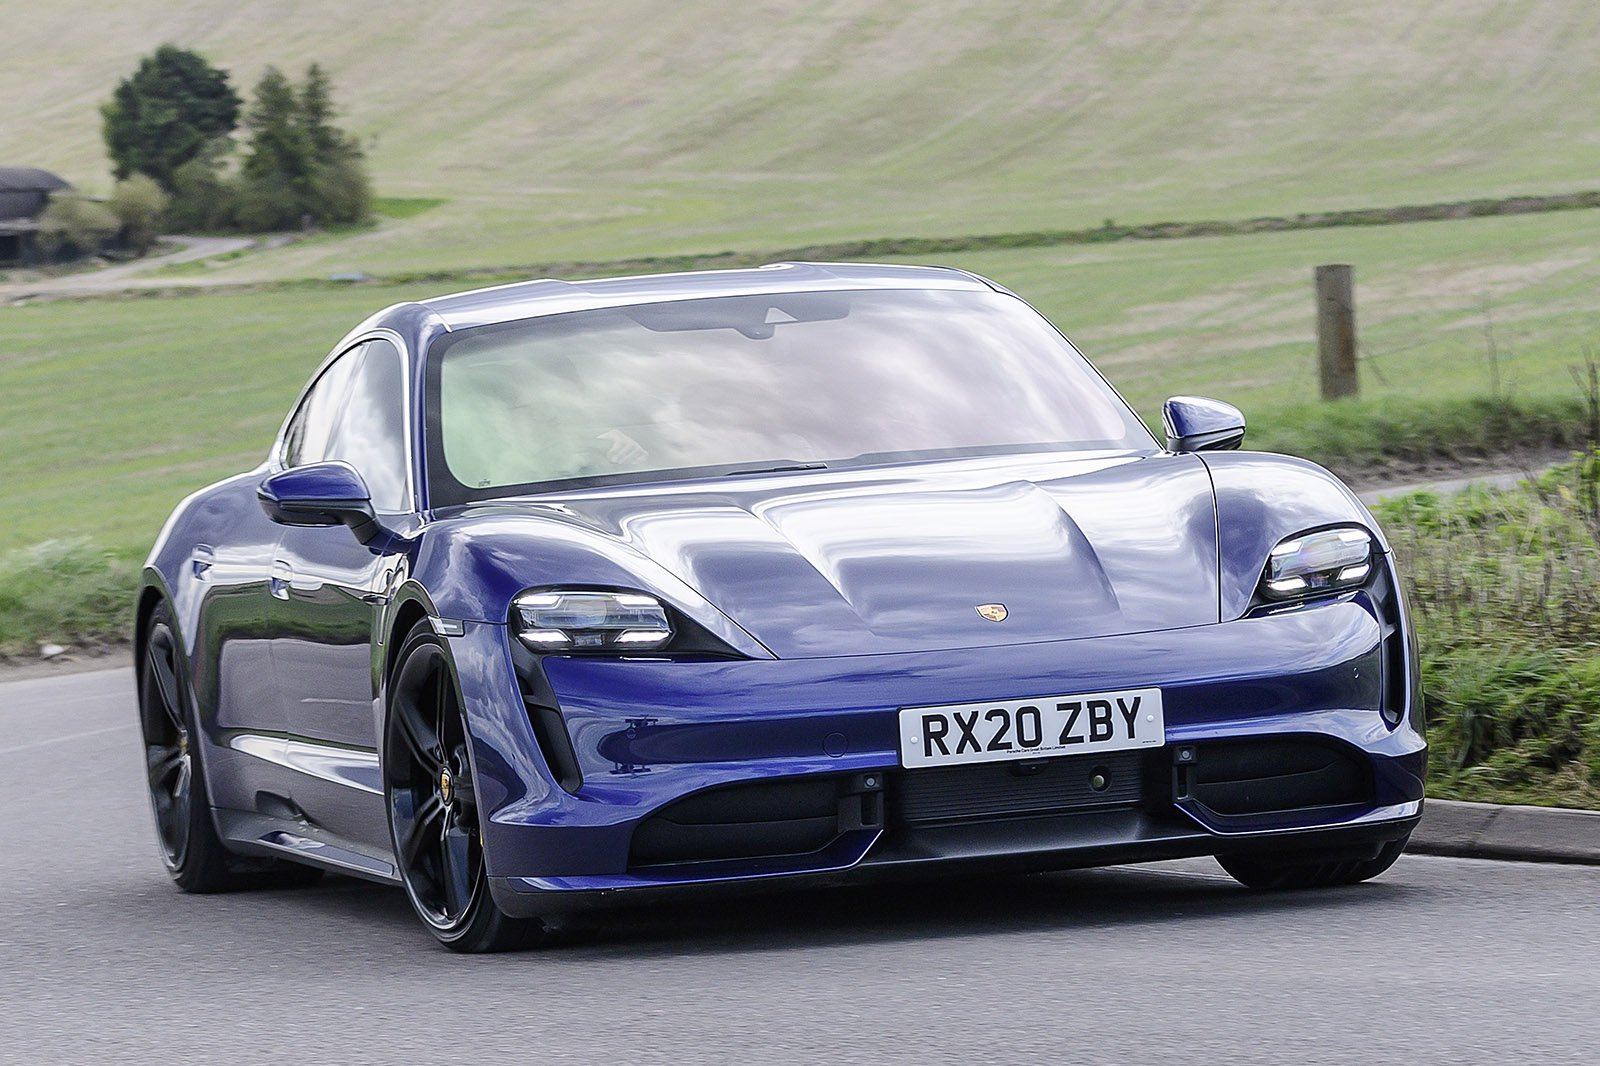 Porsche Taycan 2020 RHD front right tracking